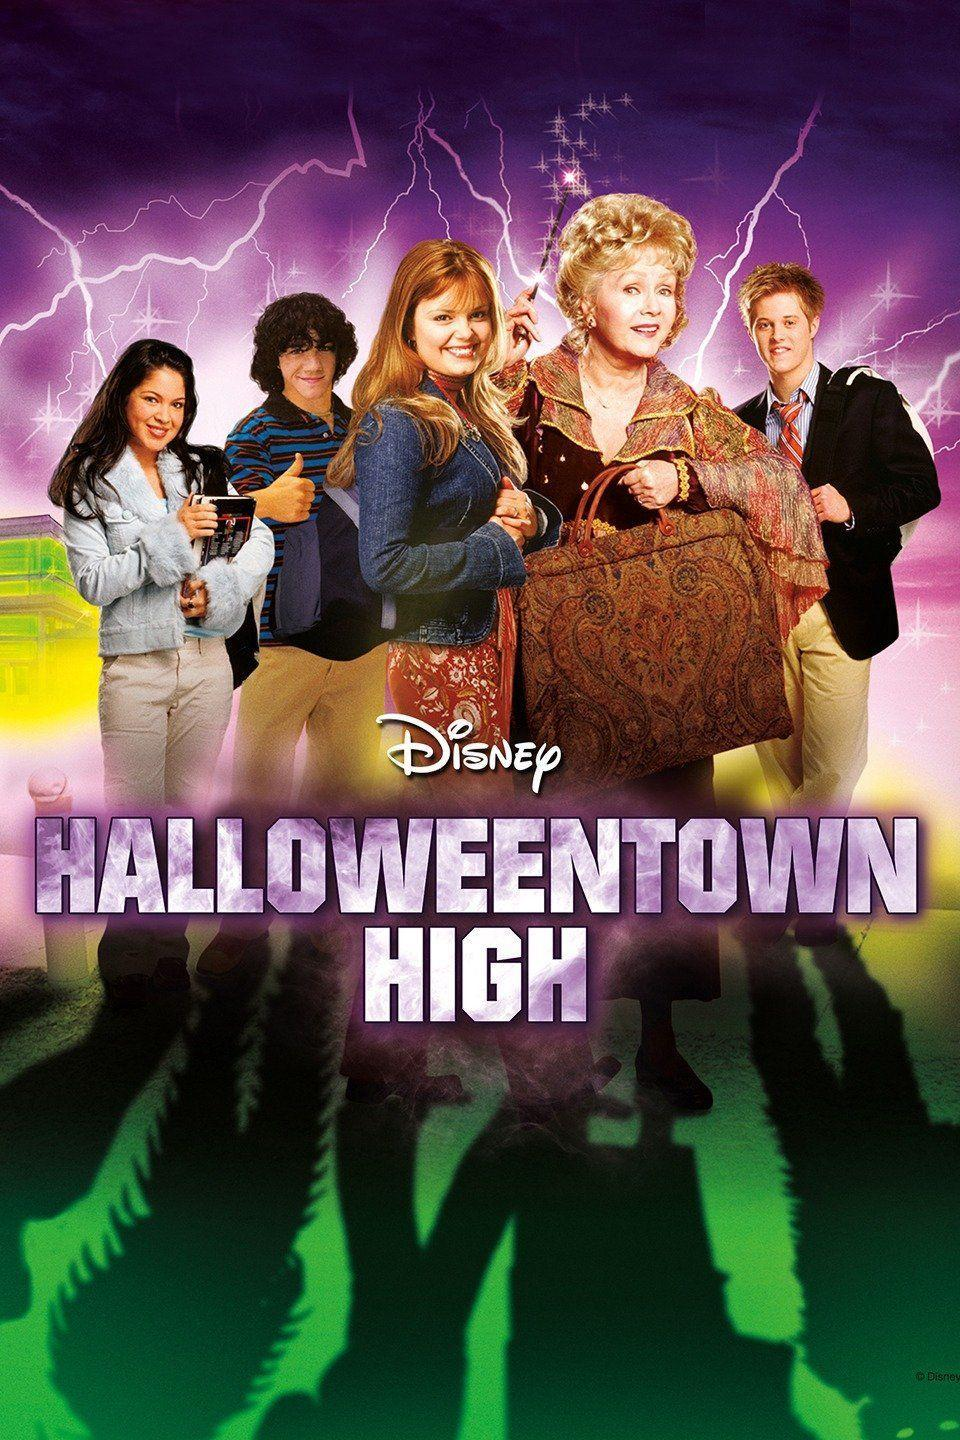 """<p>When a supernatural teen who comes from a family of witches brings some monster friends (think ogres and gremlins) into her """"mortal world"""" high school disguised as foreign exchange students, her school—and her magic—is threatened by an evil enemy. This movie is the third of the Halloweentown series.</p><p><a class=""""link rapid-noclick-resp"""" href=""""https://go.redirectingat.com?id=74968X1596630&url=https%3A%2F%2Fwww.disneyplus.com%2Fmovies%2Fhalloweentown-high%2F5vwJNkHUiI72&sref=https%3A%2F%2Fwww.countryliving.com%2Flife%2Fentertainment%2Fg32748070%2Fdisney-plus-halloween-movies%2F"""" rel=""""nofollow noopener"""" target=""""_blank"""" data-ylk=""""slk:WATCH NOW"""">WATCH NOW</a></p>"""